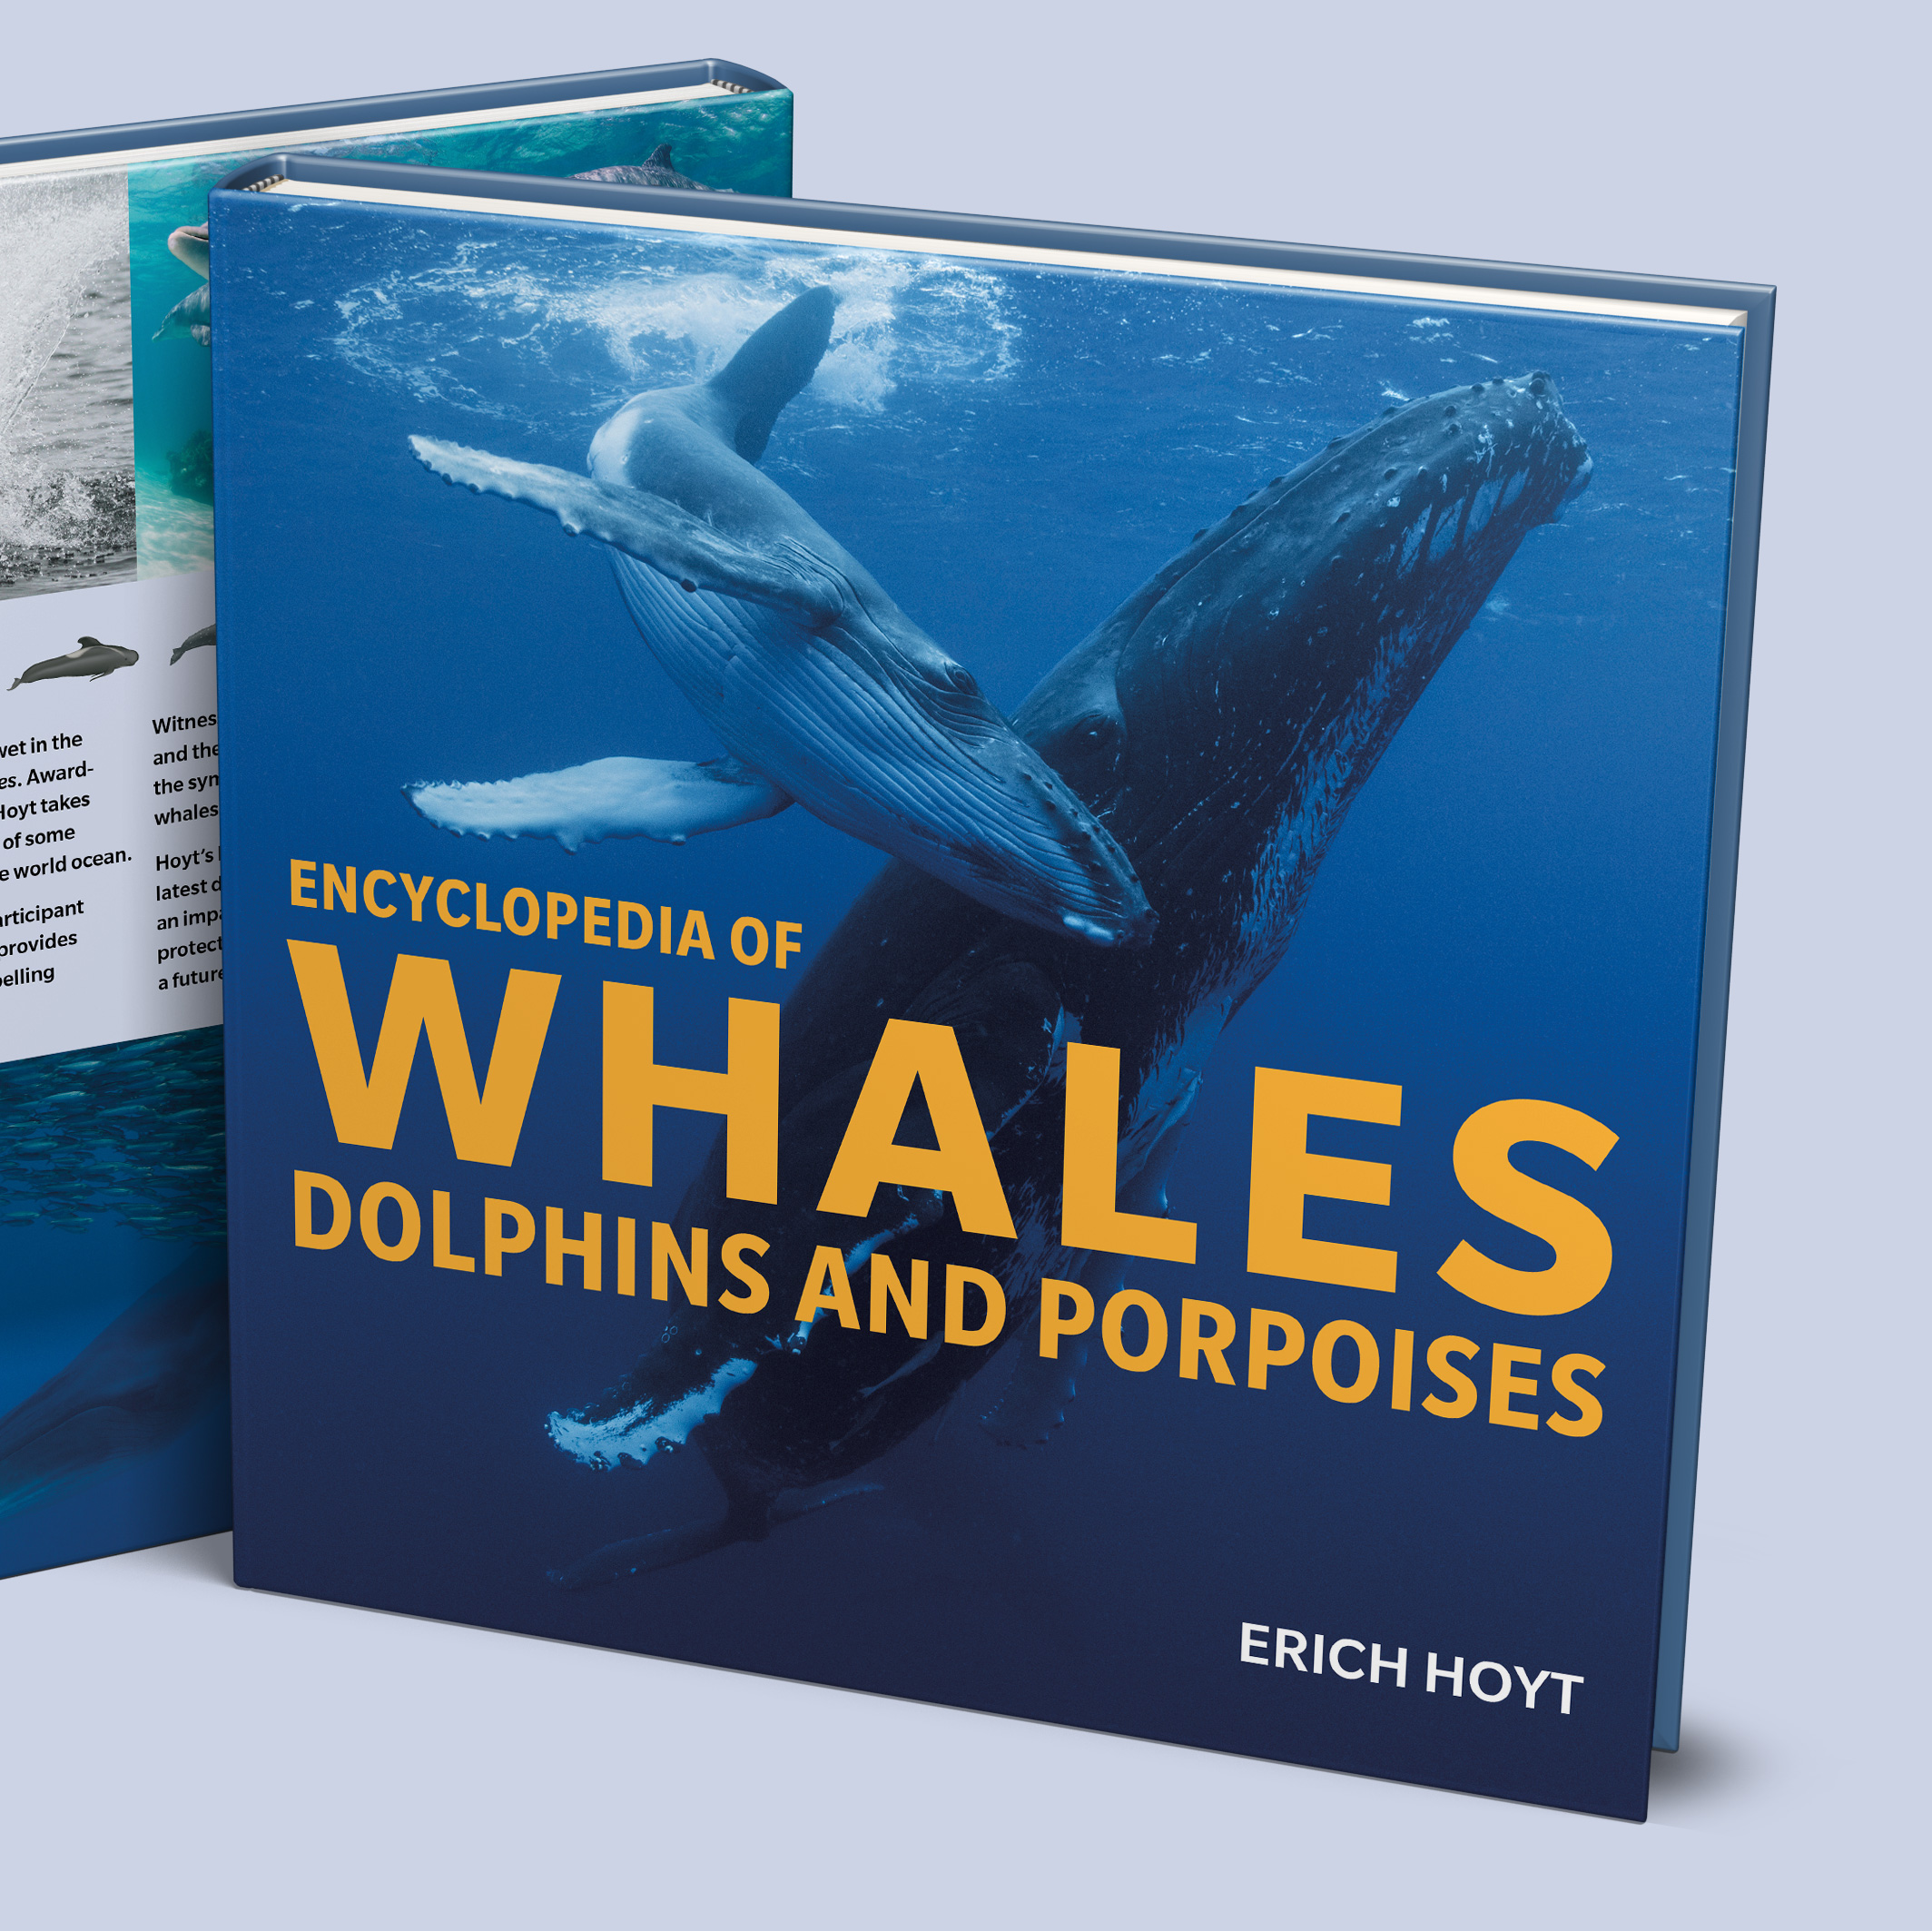 Encyclopedia of Whales